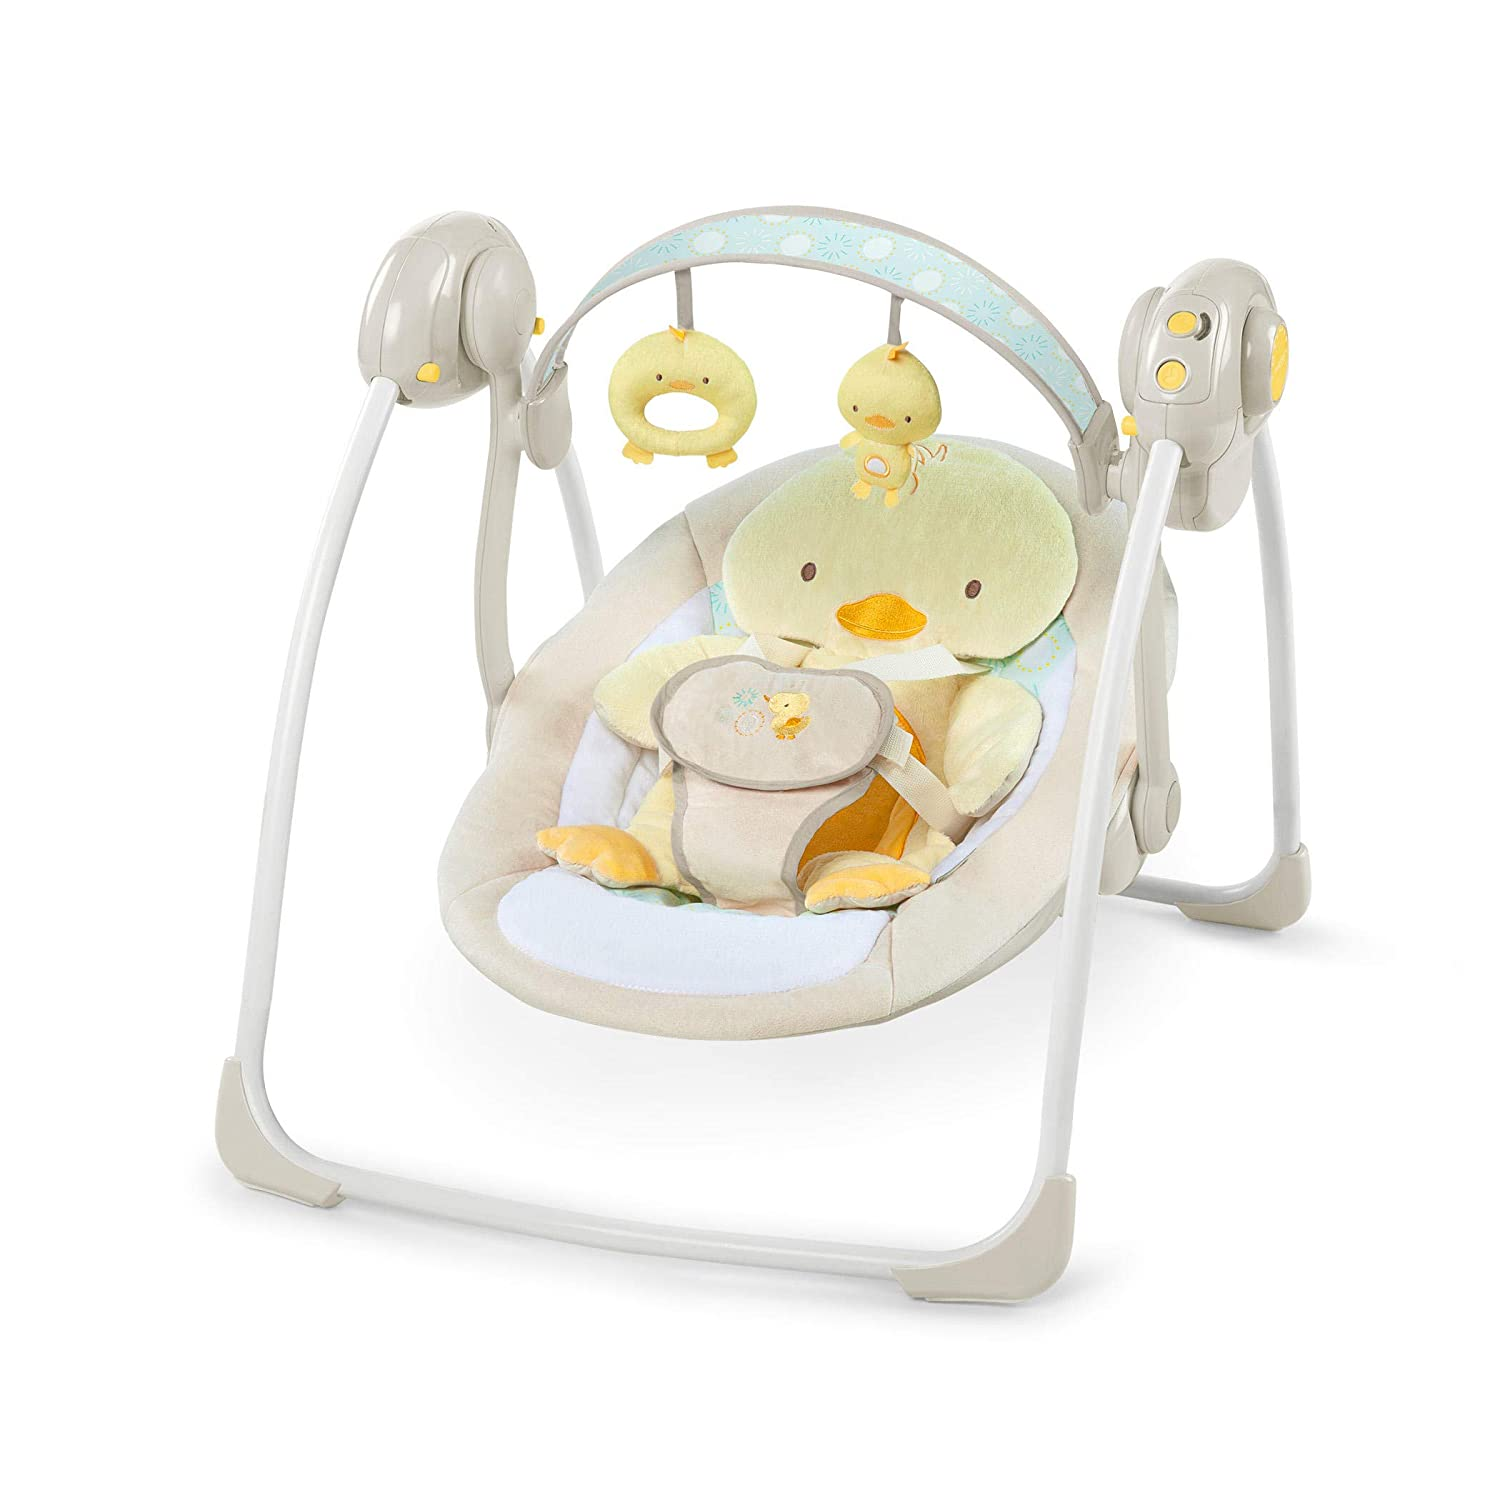 Ingenuity Pen 10241 Soothe and Delight Portable Swing – Quacks & Cuddles